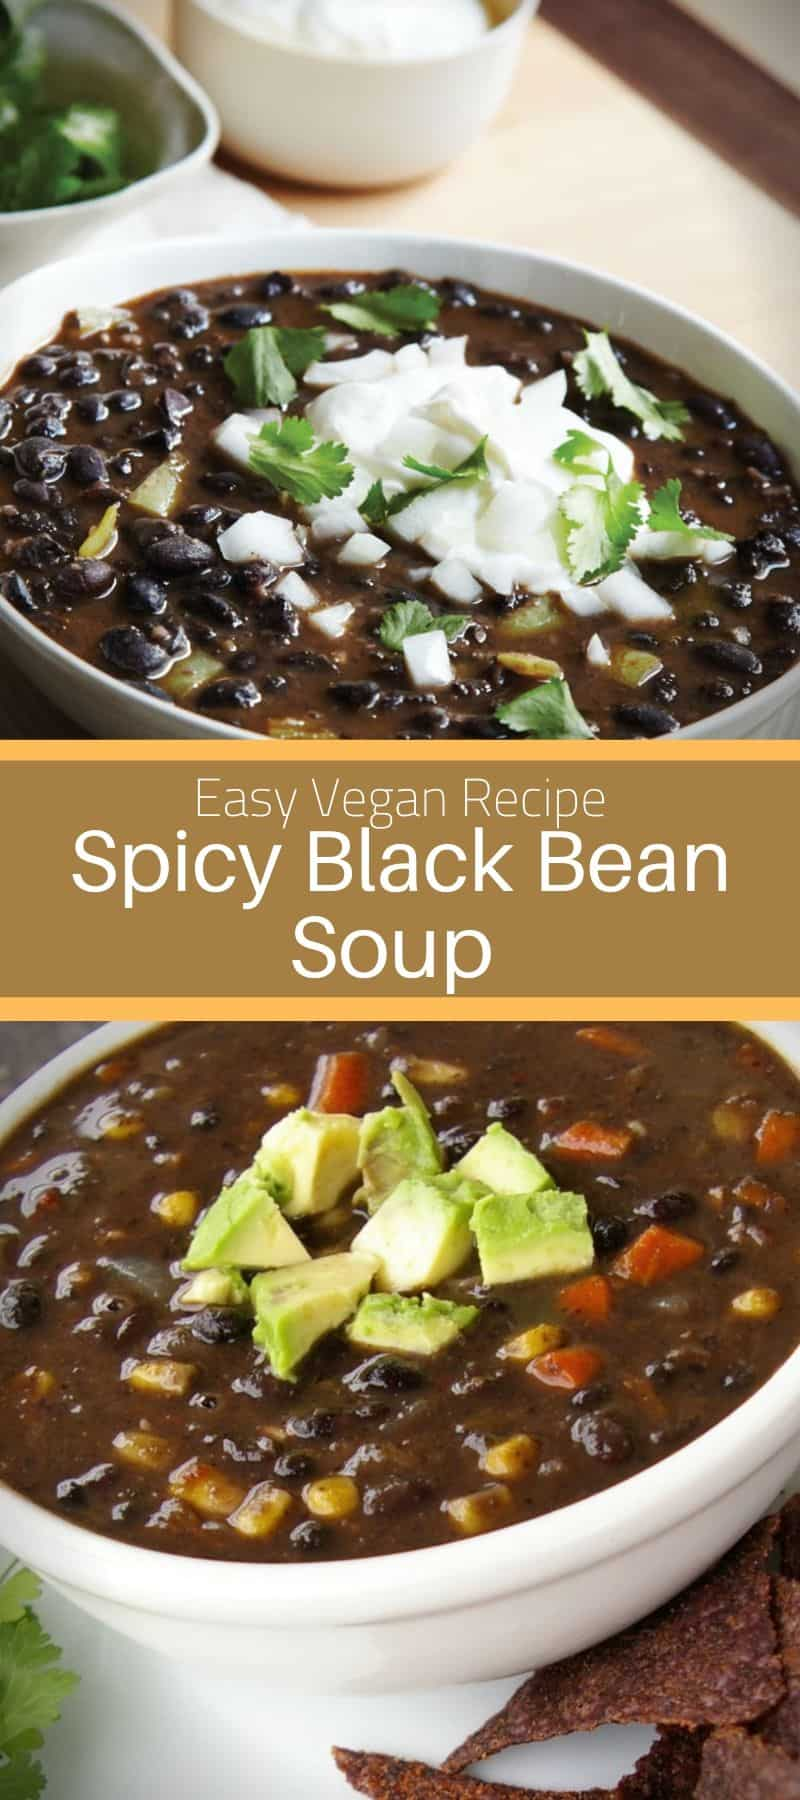 Spicy Black Bean Soup Vegan Recipe 3